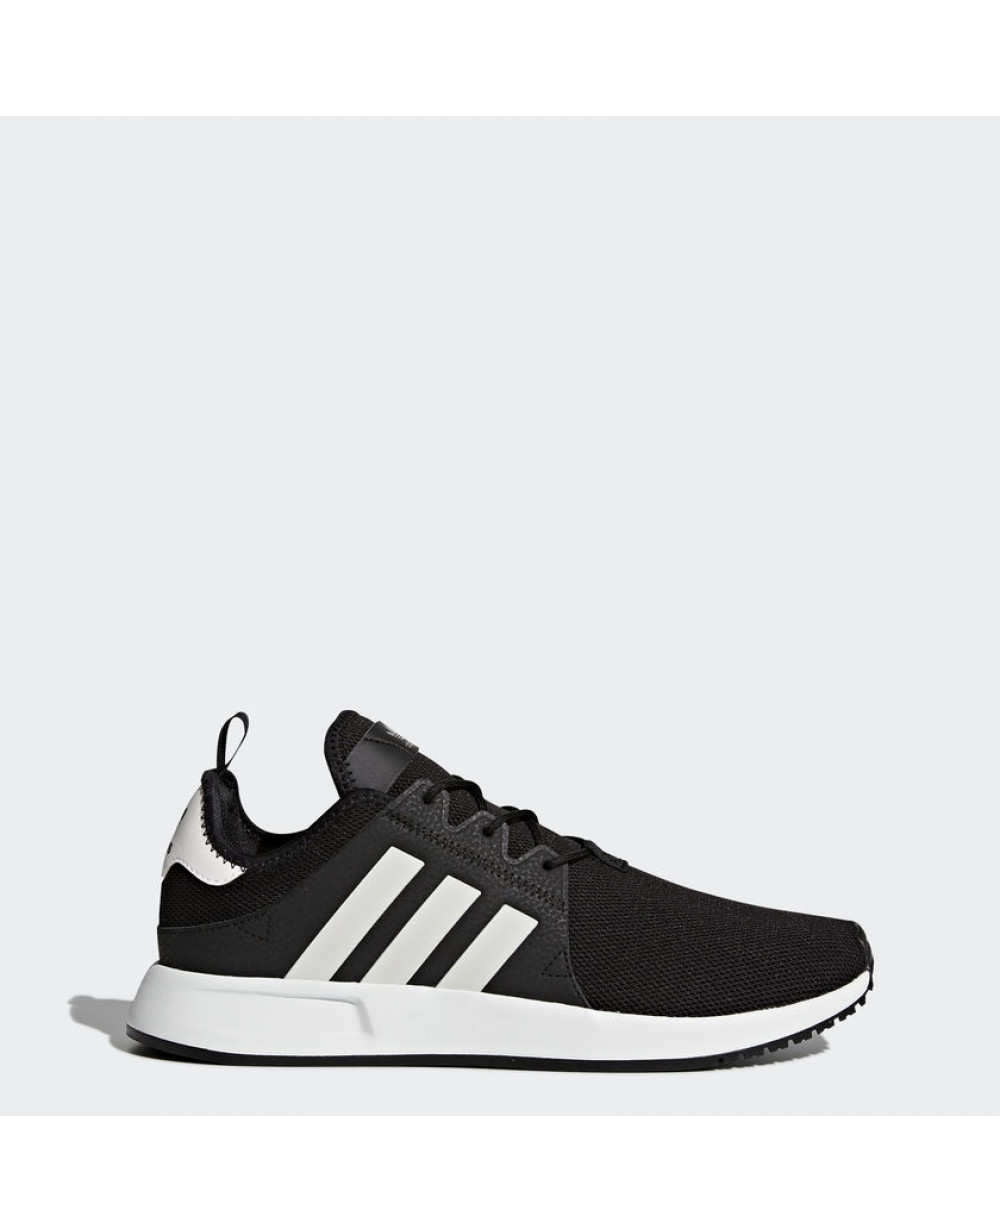 pedal selva pavo  Adidas X_PLR Running Shoes For Men BY8688